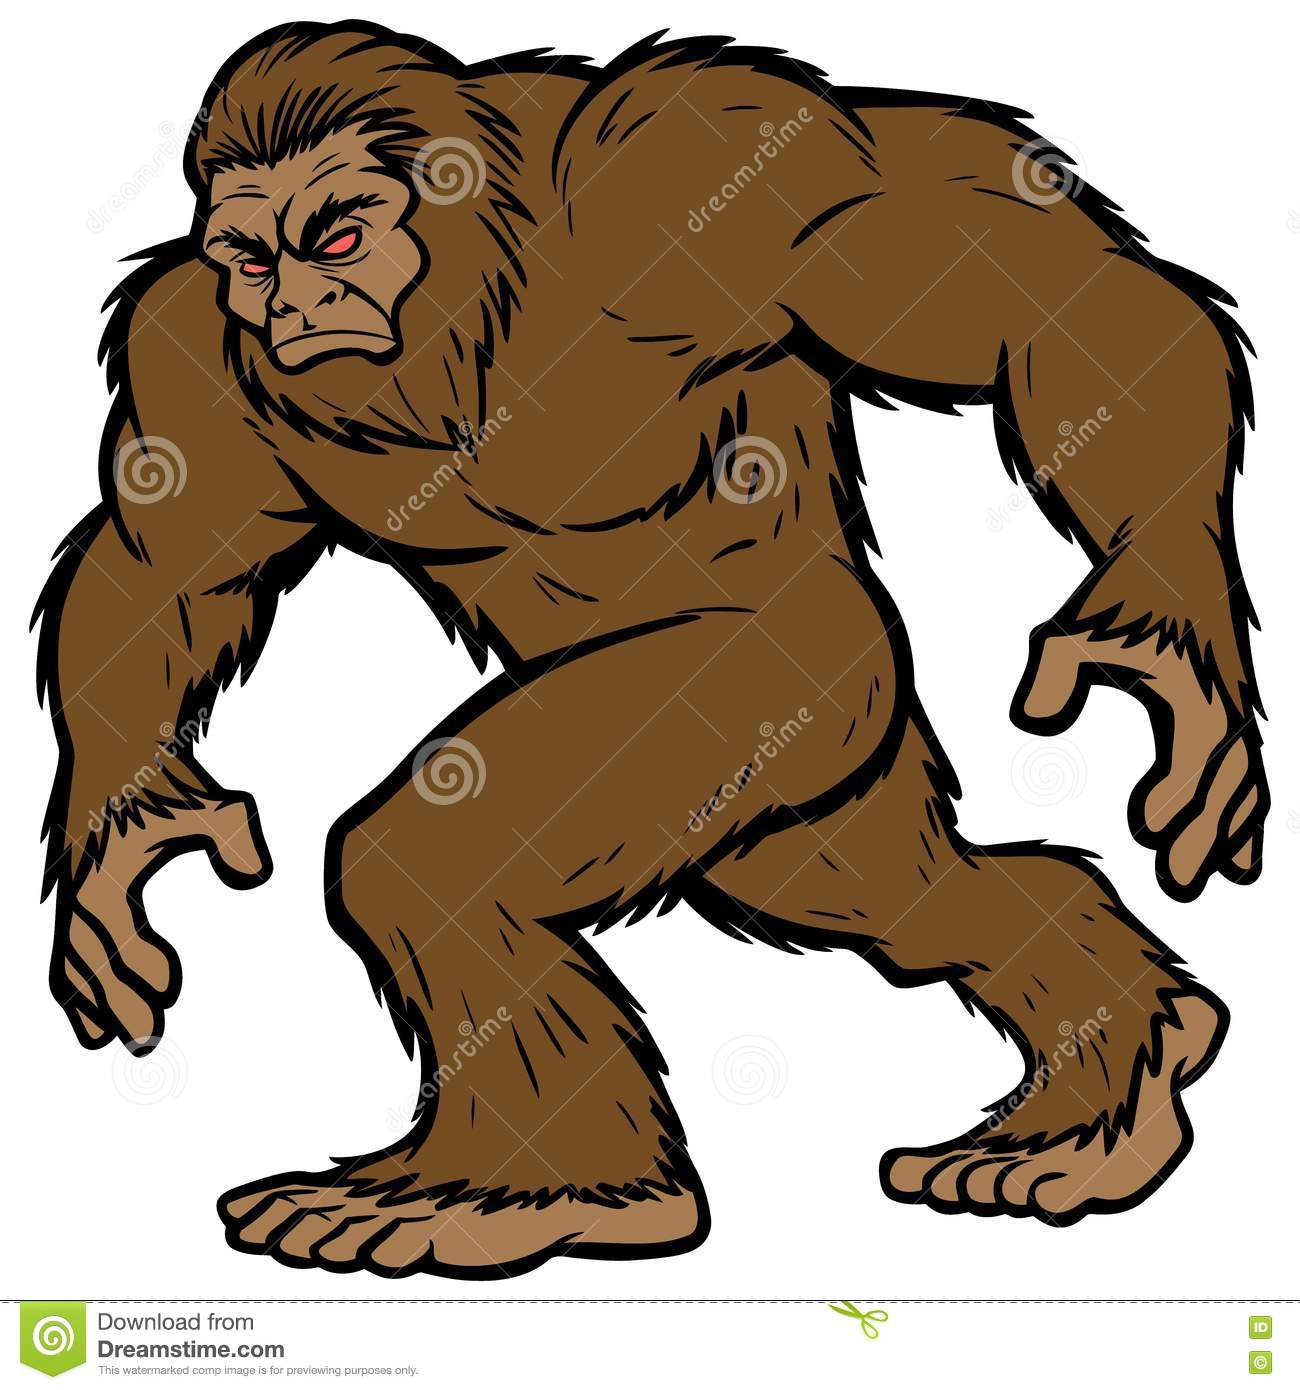 Mascota de Bigfoot